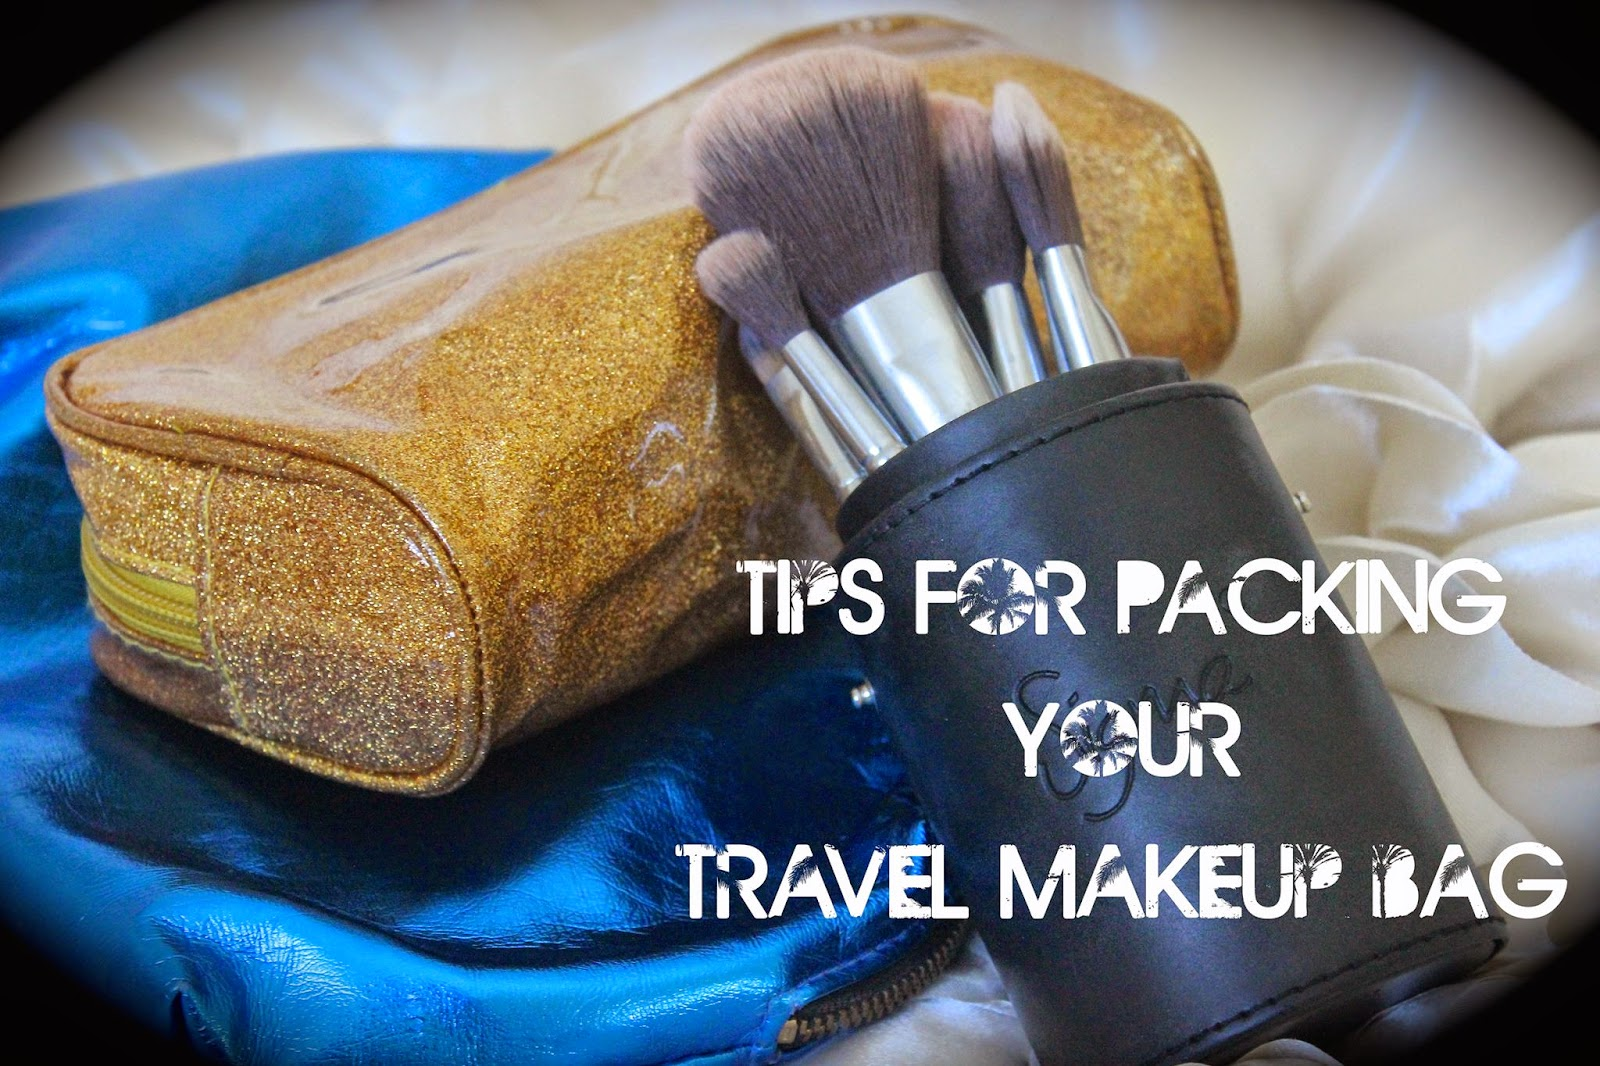 Guest Post: Tips For Packing Your Travel Makeup Bag - Travels With Drea